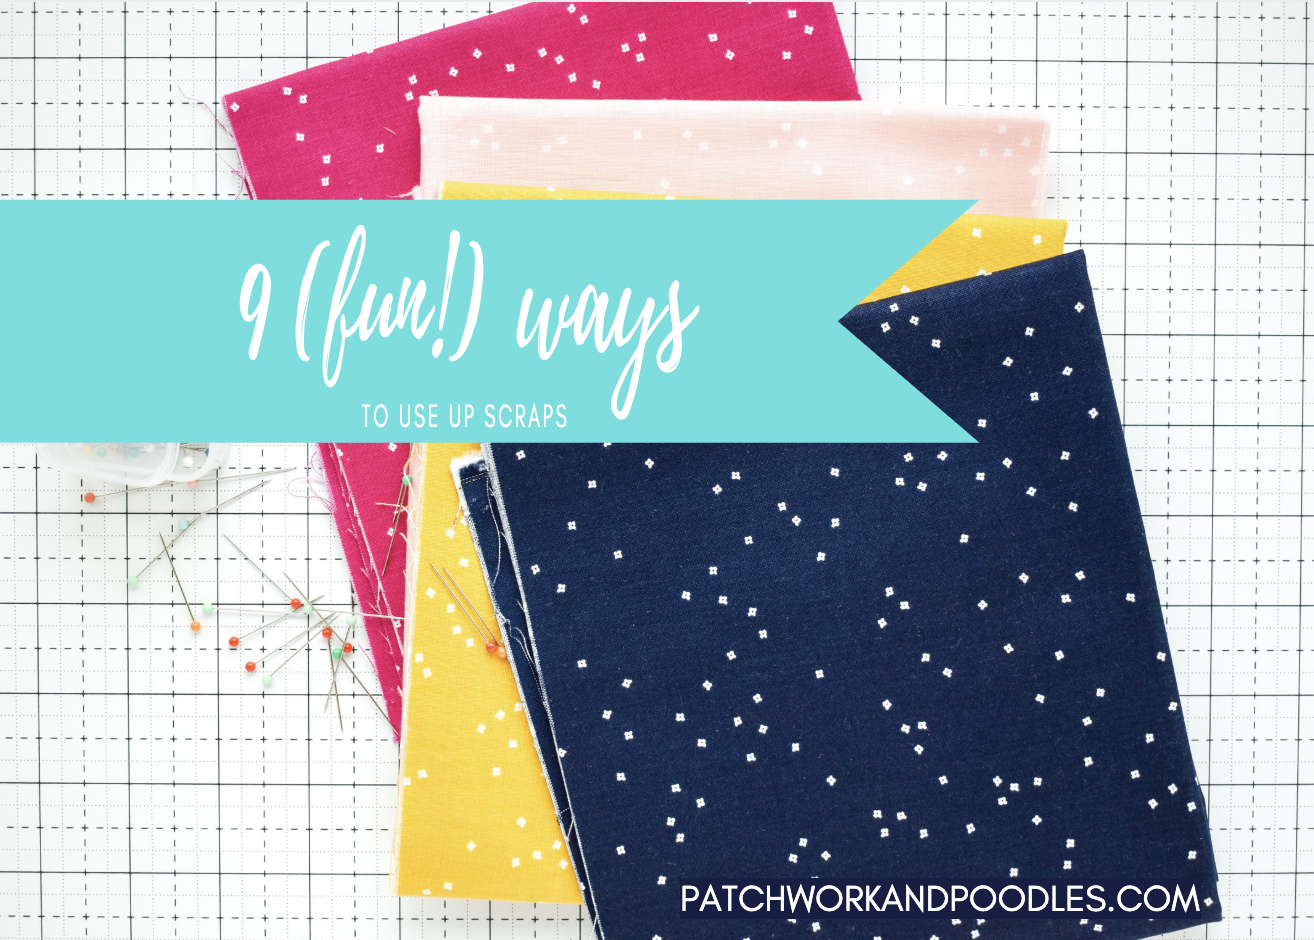 Oh Scrap! | 9 (fun!) ways to use up scraps